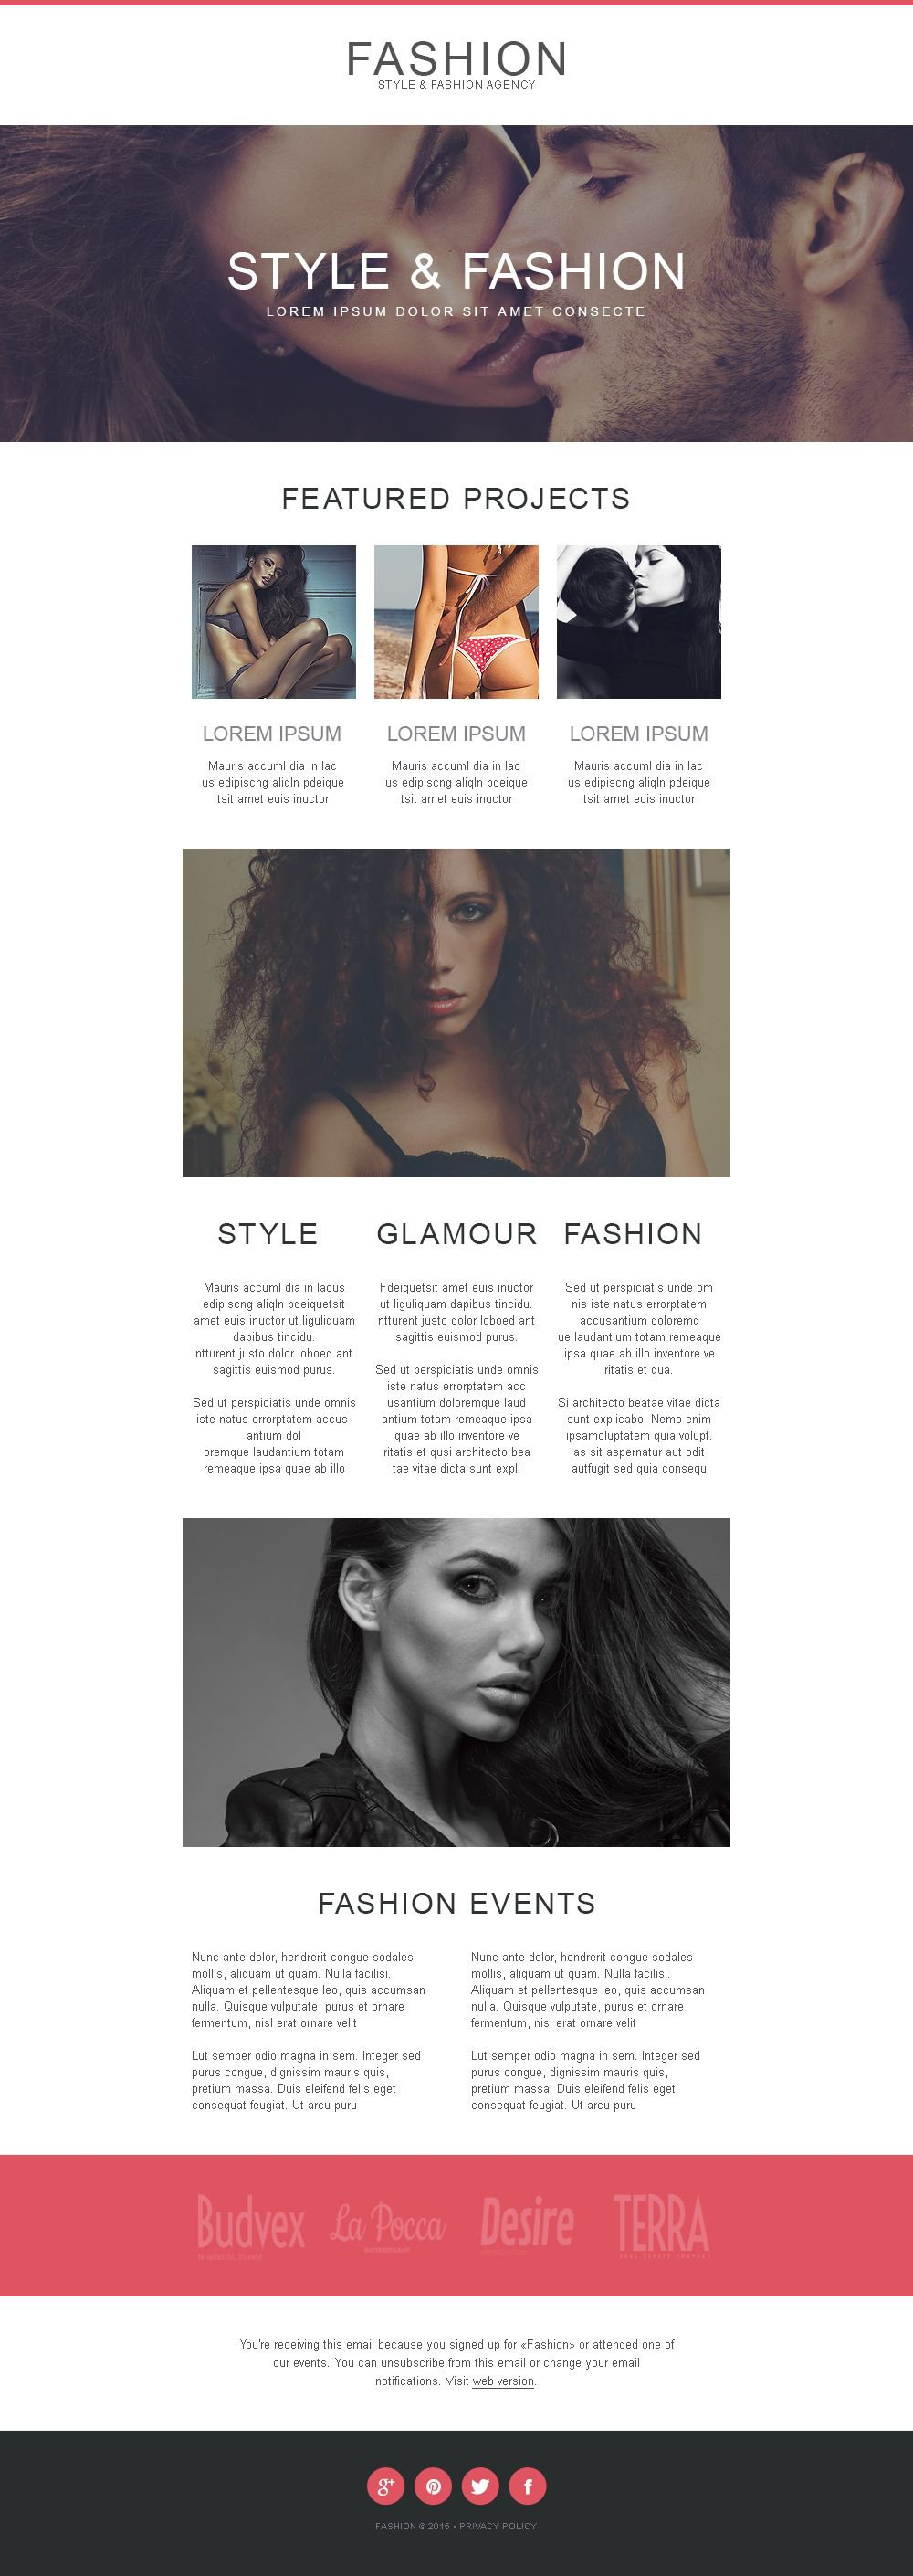 The Fashion Style Newsletter Template Design 53699, one of the best Newsletter templates of its kind (fashion, most popular), also known as fashion style Newsletter template, fashion Newsletter template, beauty Newsletter template, news Newsletter template, styles Newsletter template, brands Newsletter template, trends designers Newsletter template, models Newsletter template, fashion Newsletter template, shows Newsletter template, collections and related with fashion style, fashion, beauty, news, styles, brands, trends designers, models, fashion, shows, collections, etc.